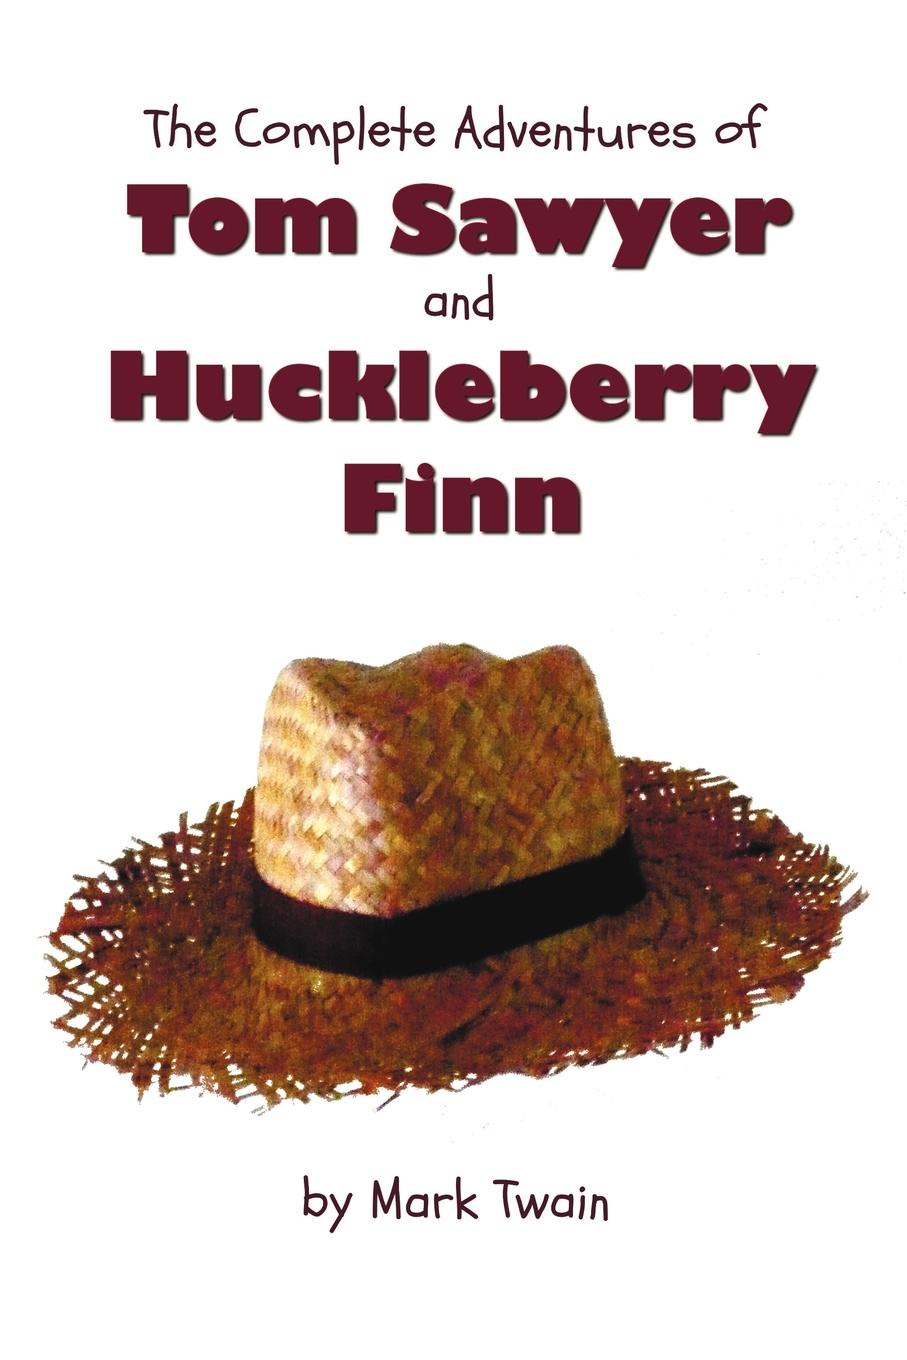 Mark Twain The Complete Adventures of Tom Sawyer and Huckleberry Finn (Unabridged . Illustrated) - The Adventures of Tom Sawyer, Adventures of Huckleberry Finn, m twain tom sawyer abroad